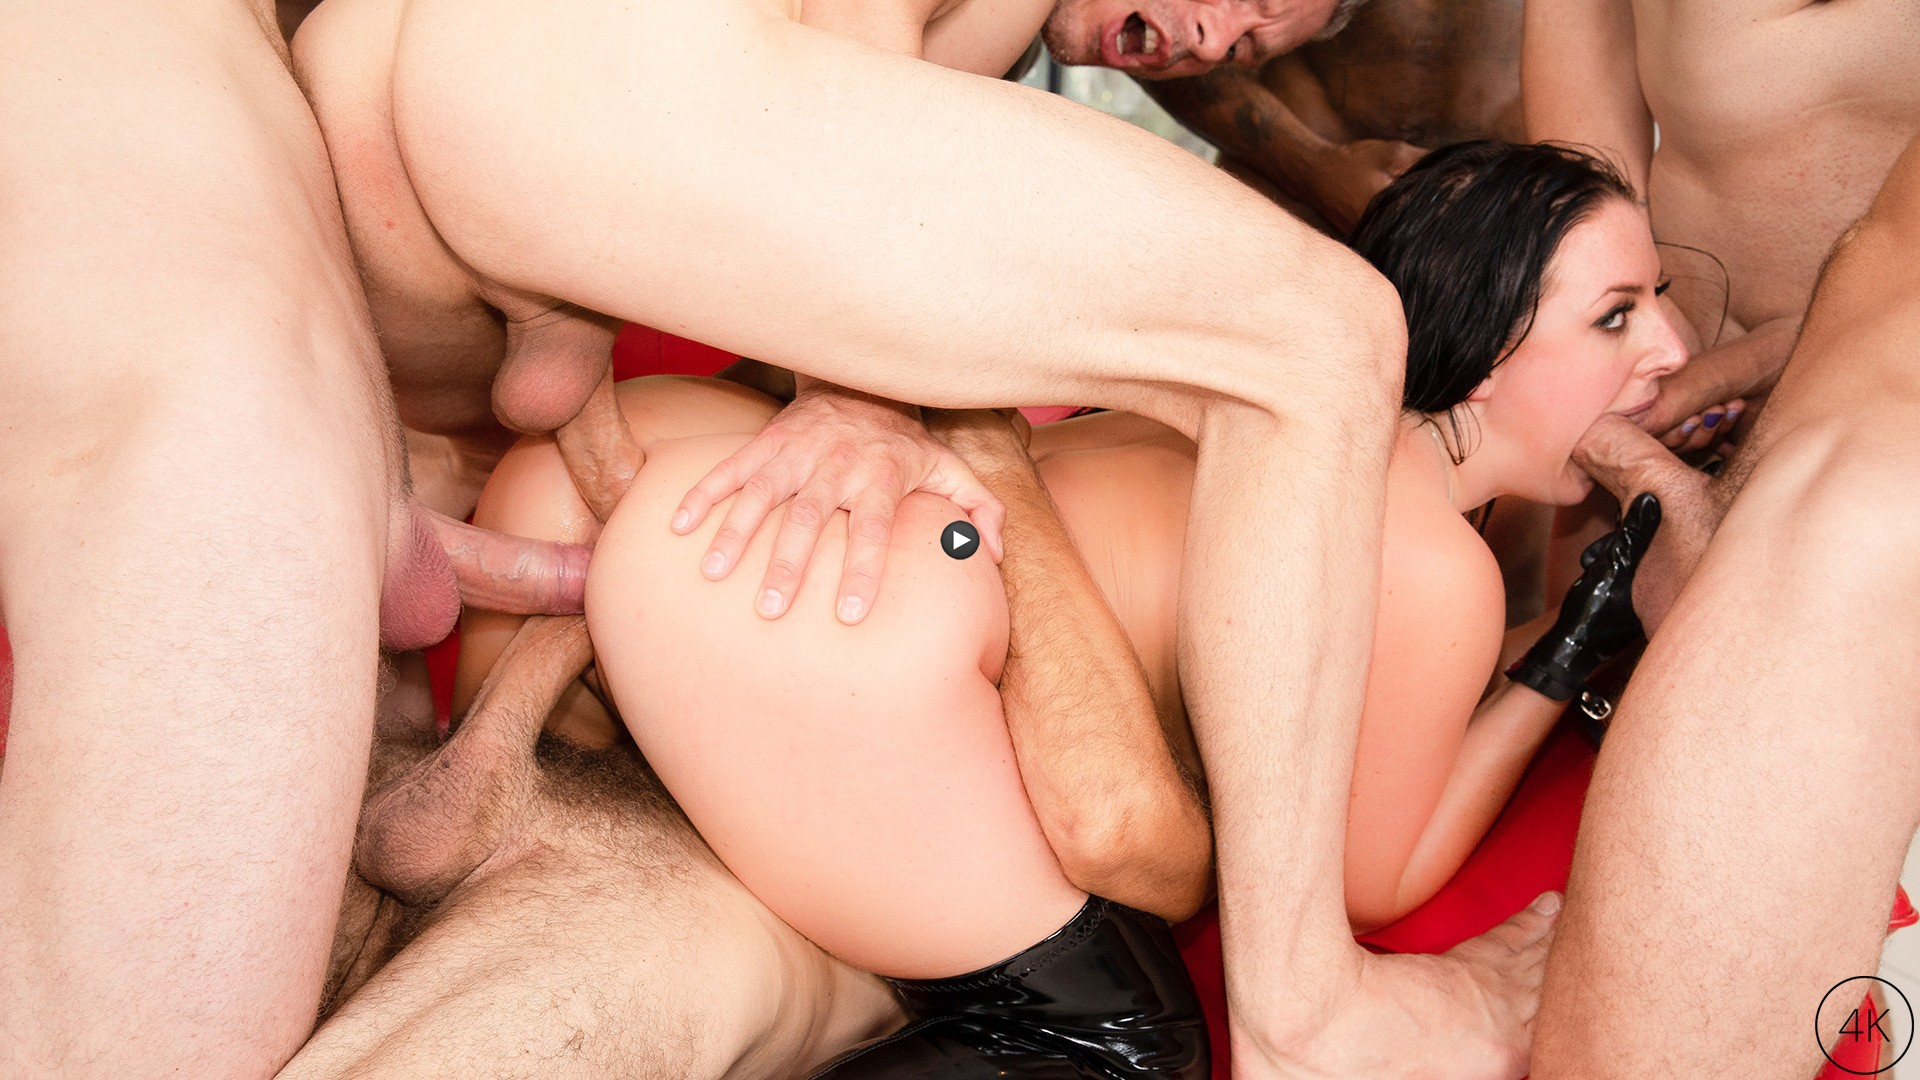 Watch Trailer Angela White's Dark Side Her Biggest Gangbang Ever, Double Anal, Triple Penetration!